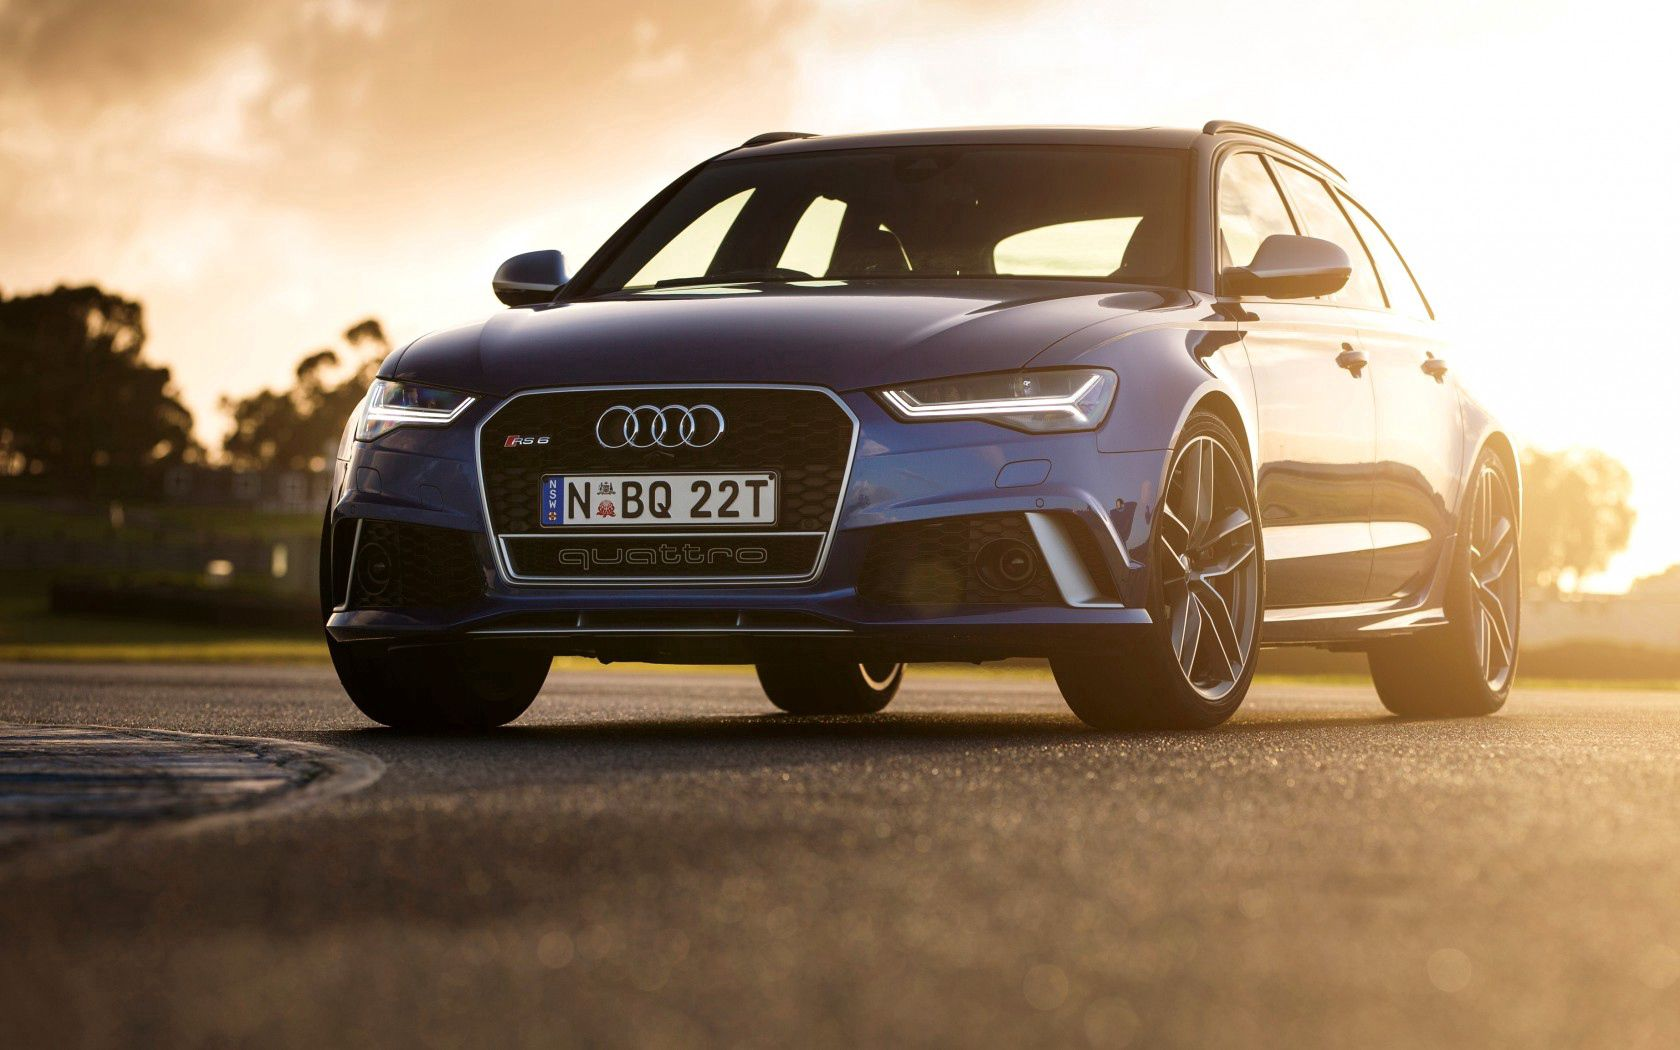 101136 download wallpaper Cars, Audi, Rs6, Avant, Au-Spec, Auto screensavers and pictures for free